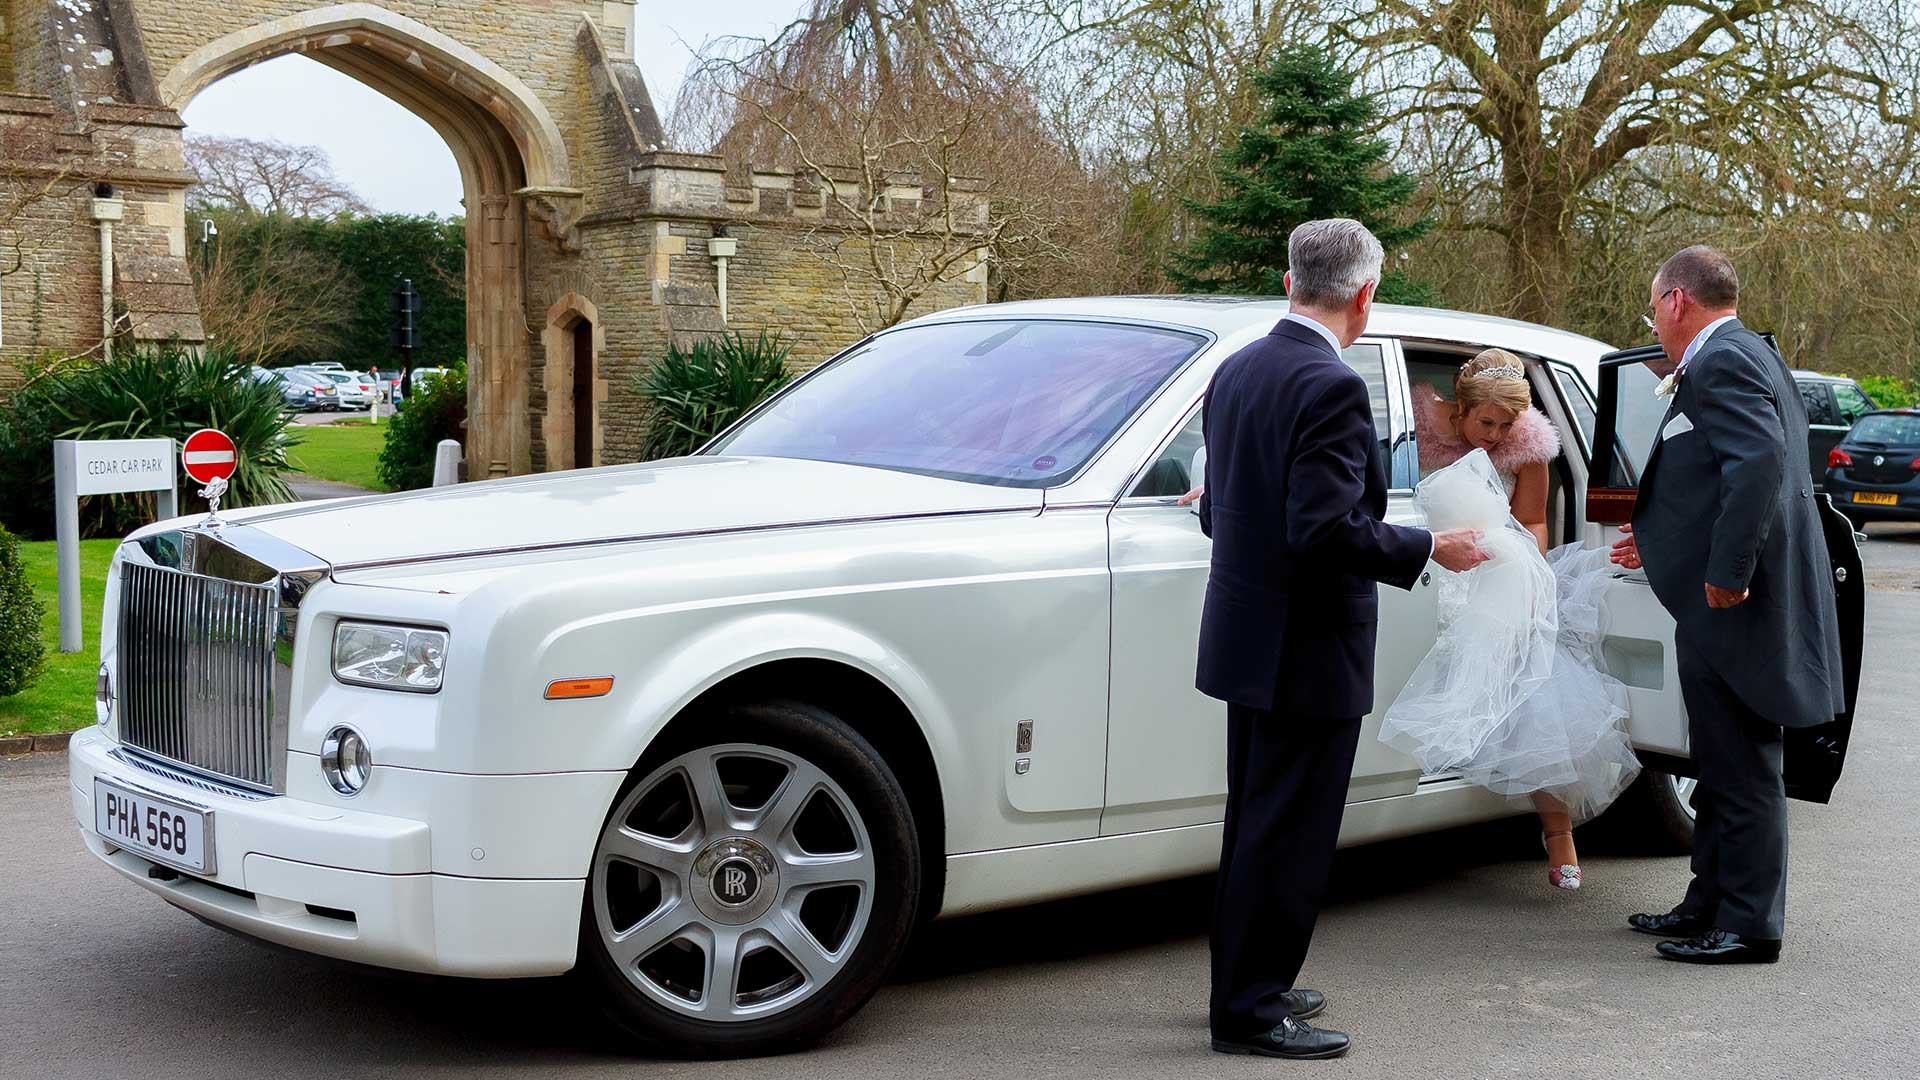 The bride getting out of the Rolls-Royce Phantom